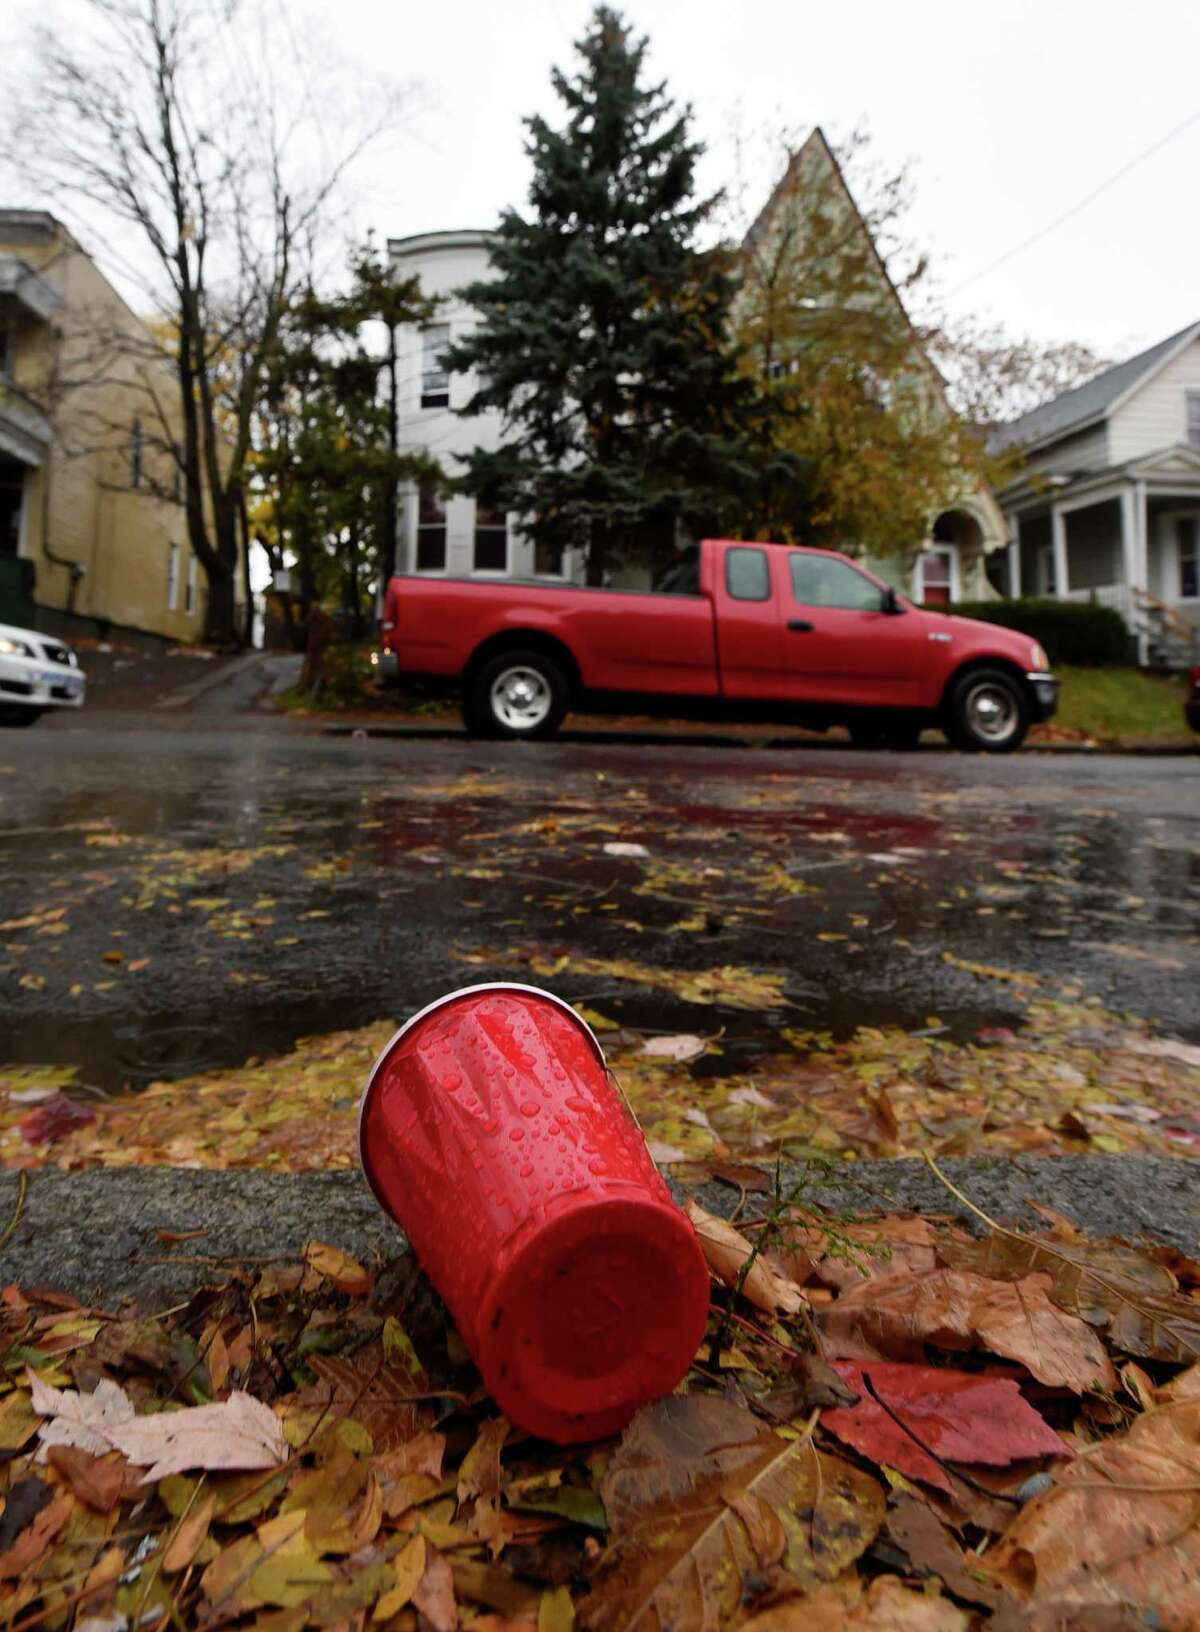 A red plastic cup litters the street across from 461 Hamilton Street at the scene of an alleged underage drinking party Monday afternoon, Nov. 17, 2014, in Albany, N.Y. Police responded to a call early Sunday morning and found five intoxicated 19-year-old men, all University at Albany students. One of them, Trevor Duffy, 19, of Bronx, died Monday at Albany Medical Center after excessive alcohol consumption.The other students were treated and released from area hospitals. (Skip Dickstein/Times Union)